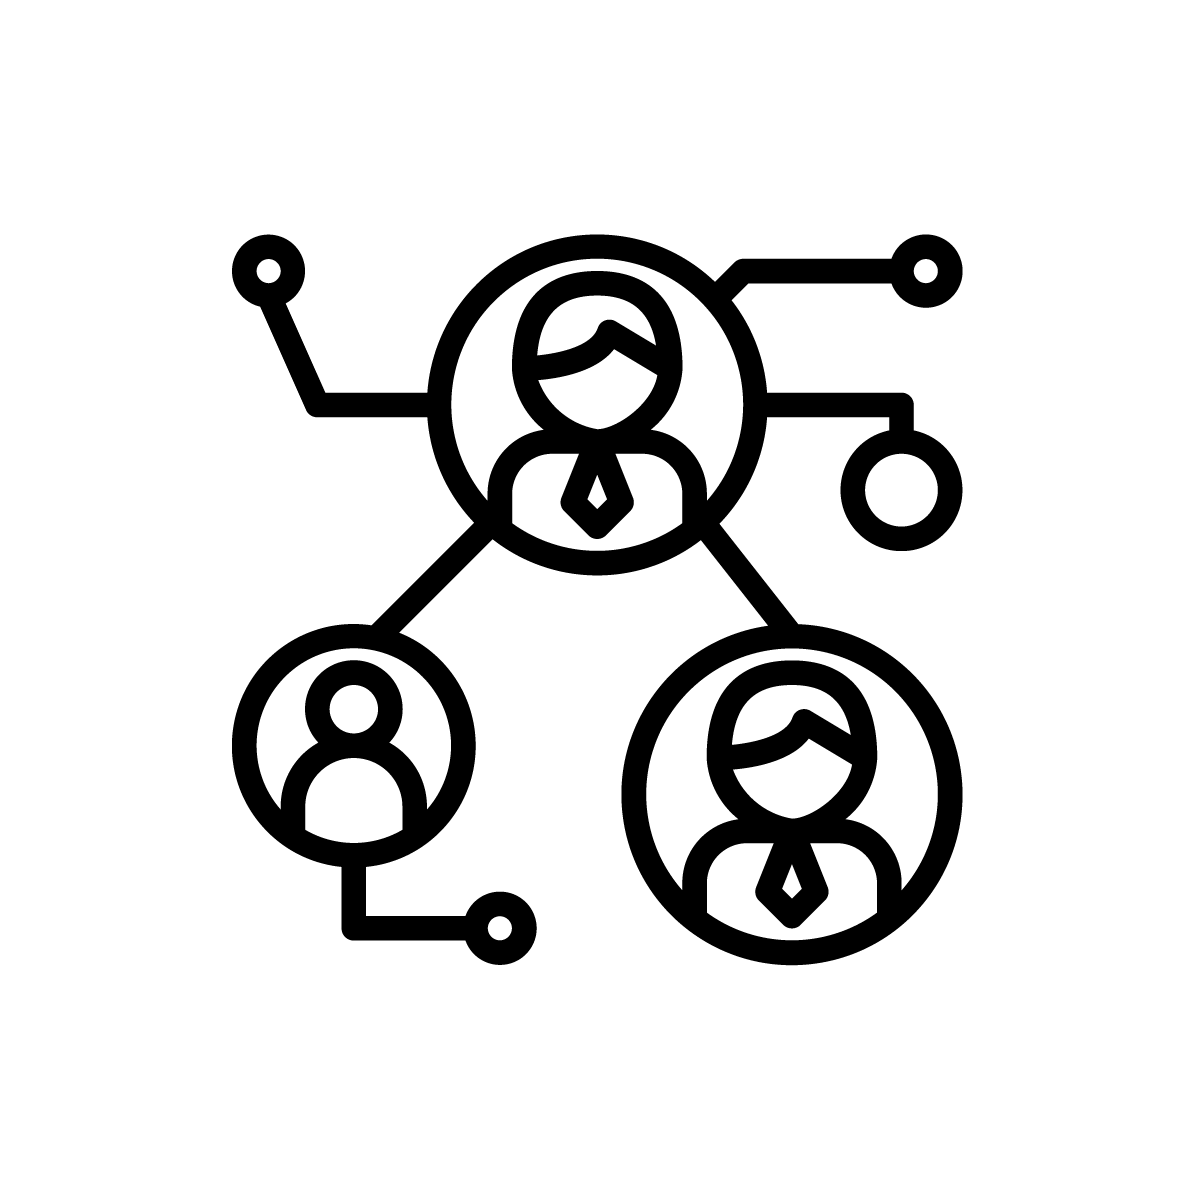 coworking_icons 22.png